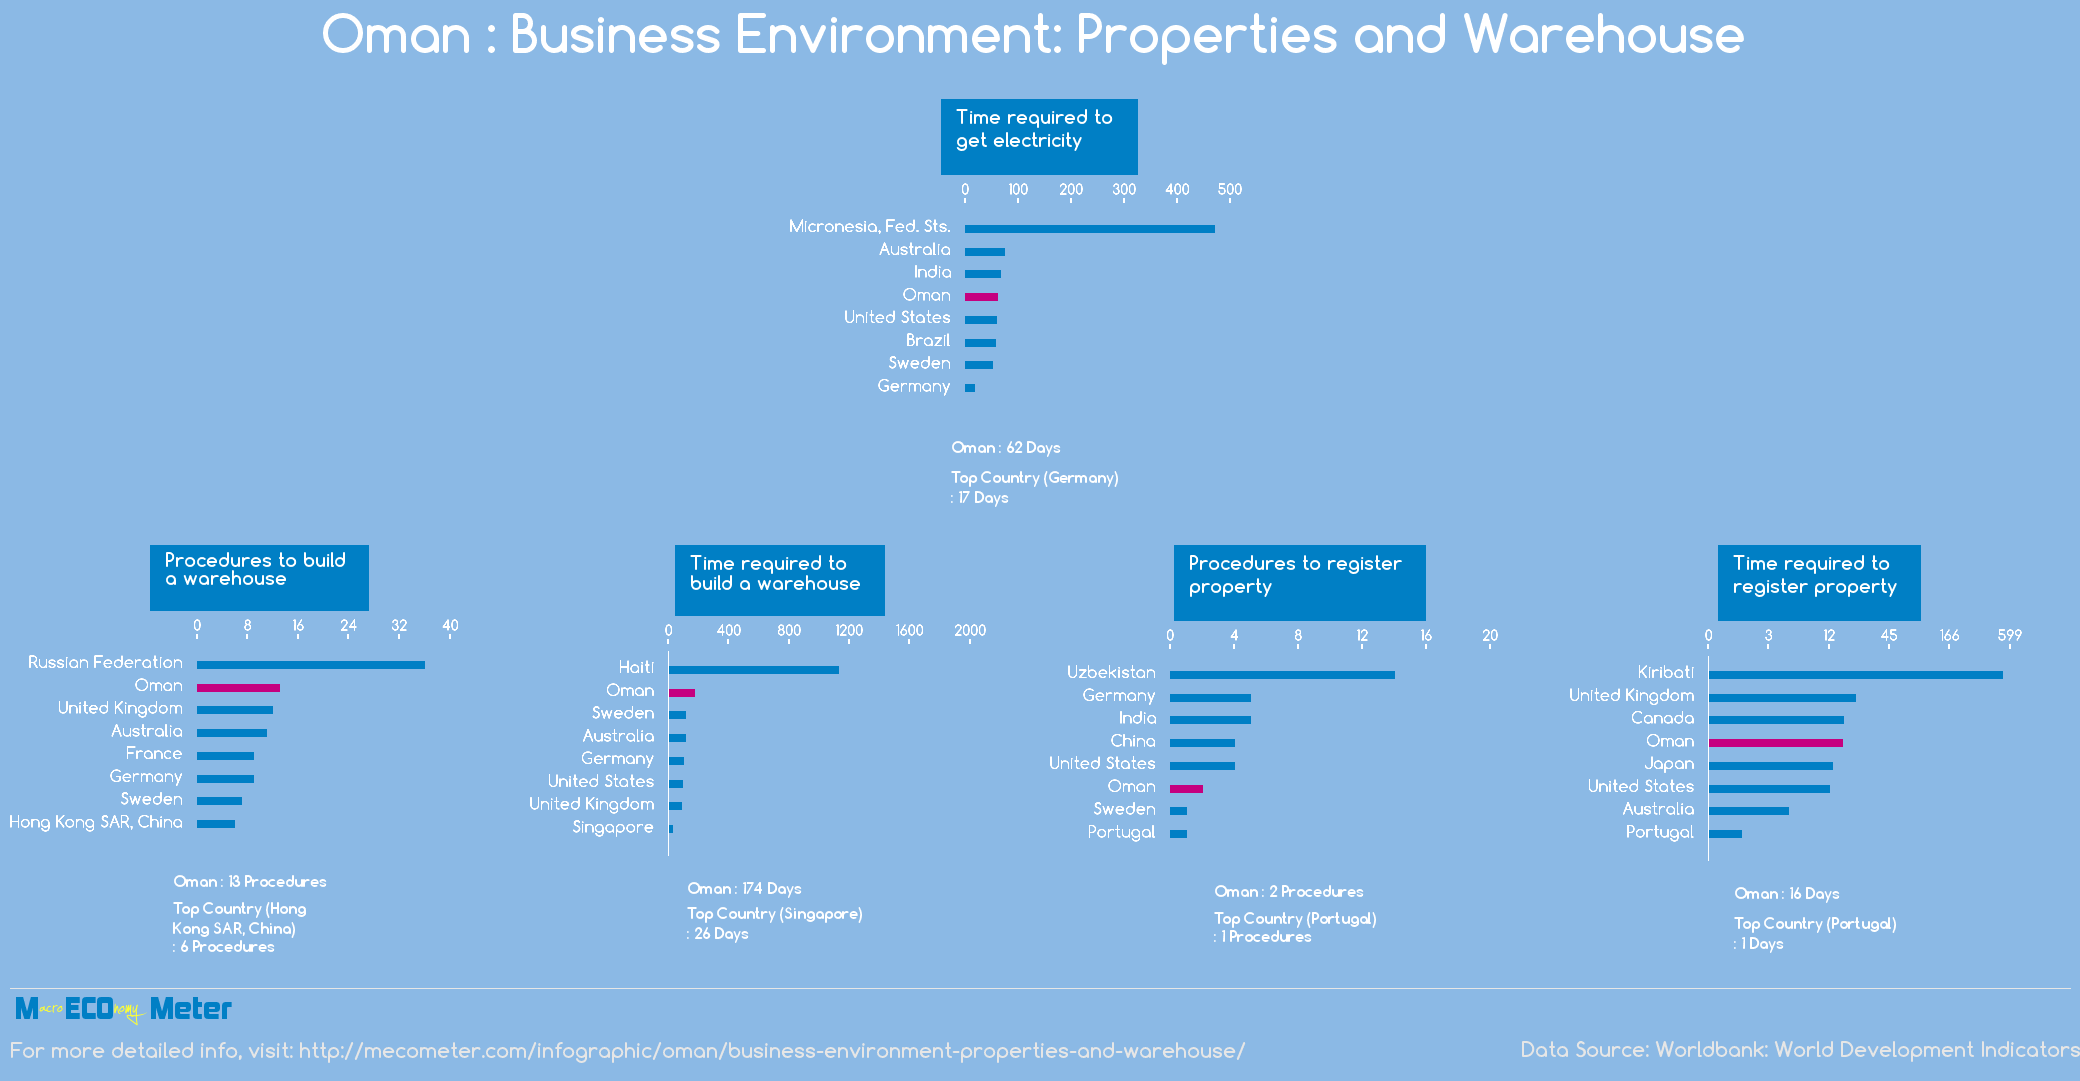 Oman : Business Environment: Properties and Warehouse